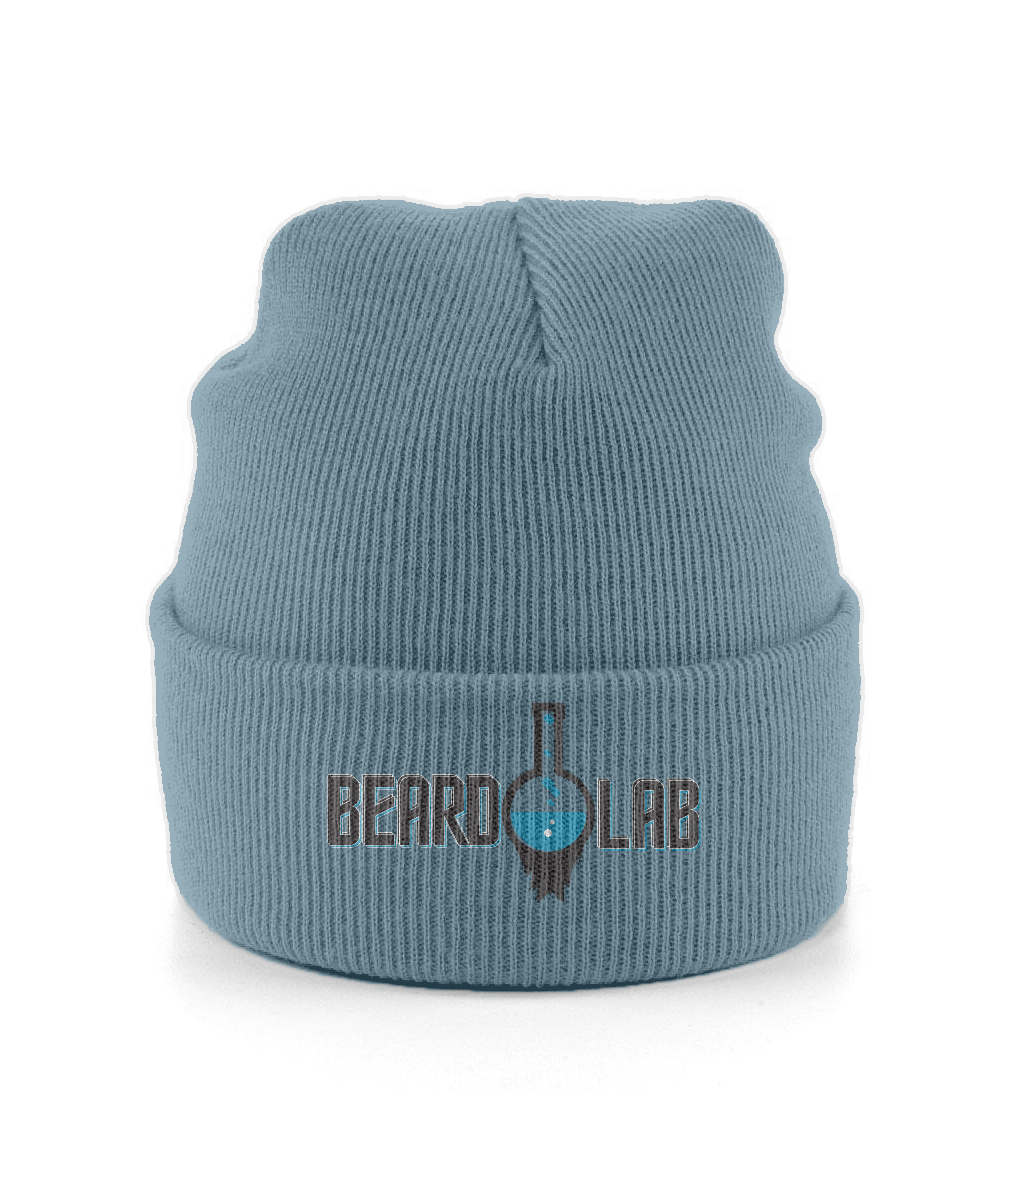 Beard Lab Cuffed Beanie - BeardLab Embroidered Hats - Beard Oil UK, Beard Care BeardLab - UK Beard Oil - Beard Products